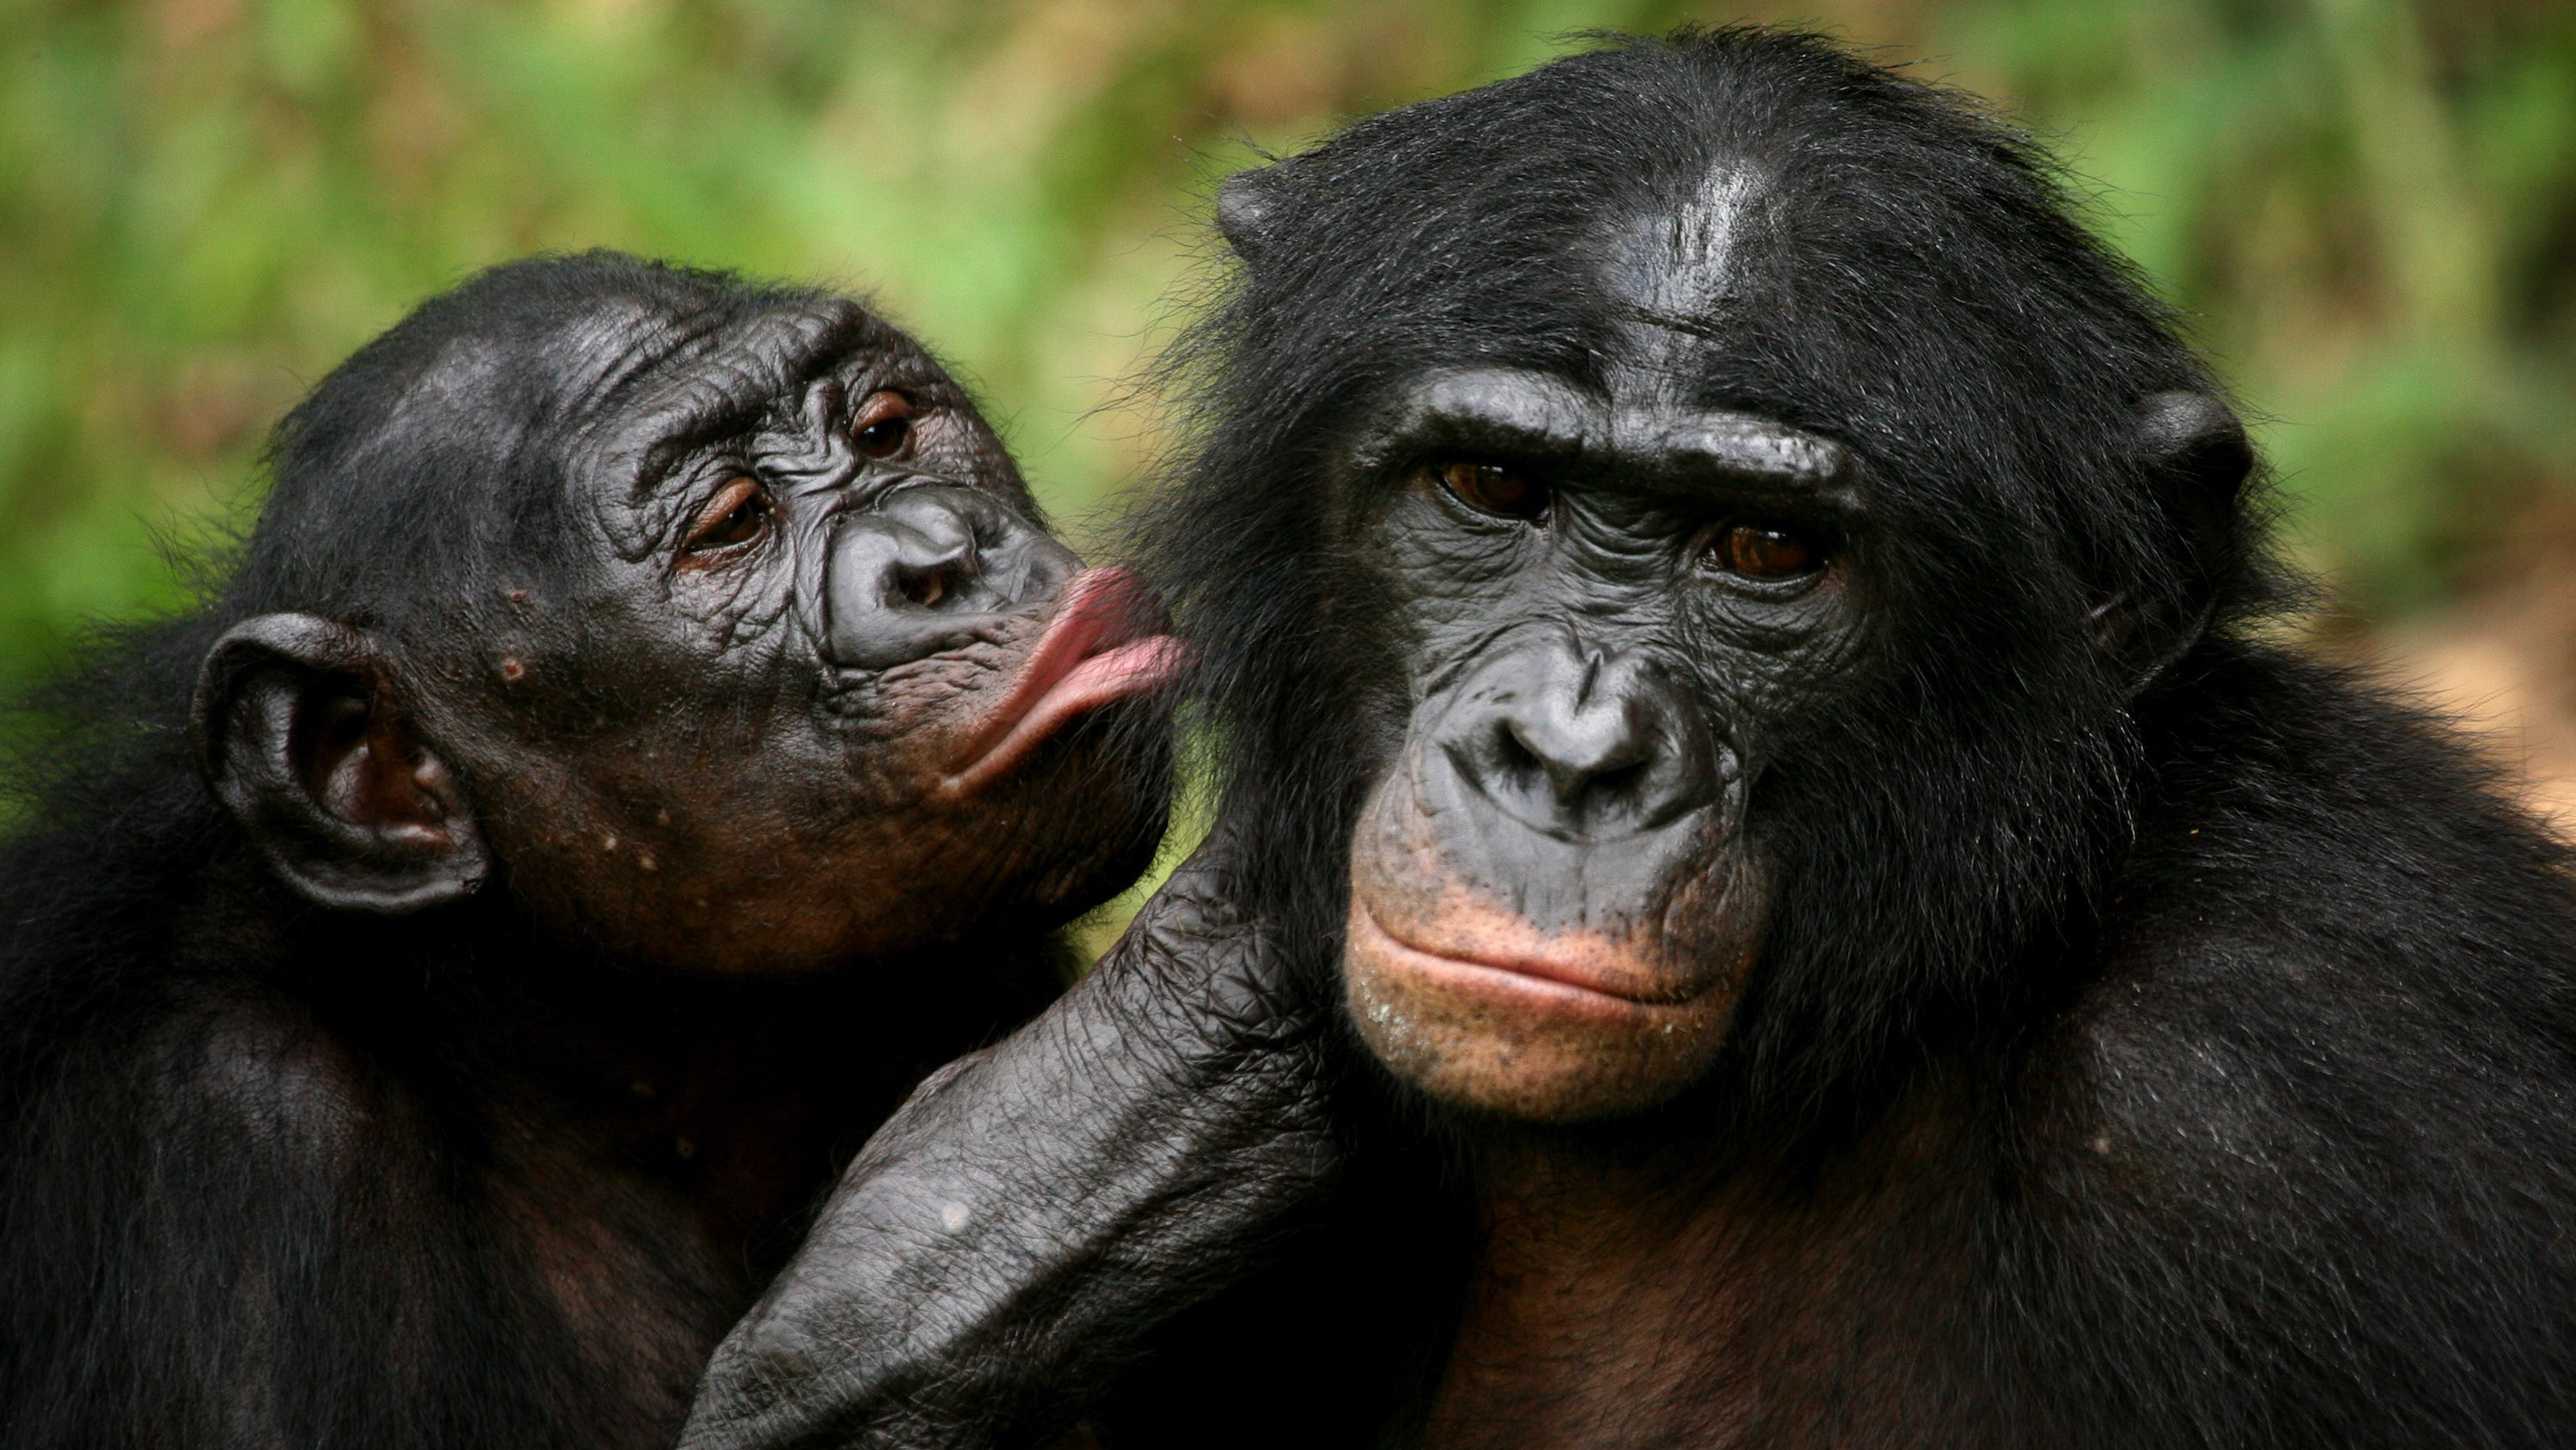 Is patriarchy natural? Bonobos prove that matriarchies exist